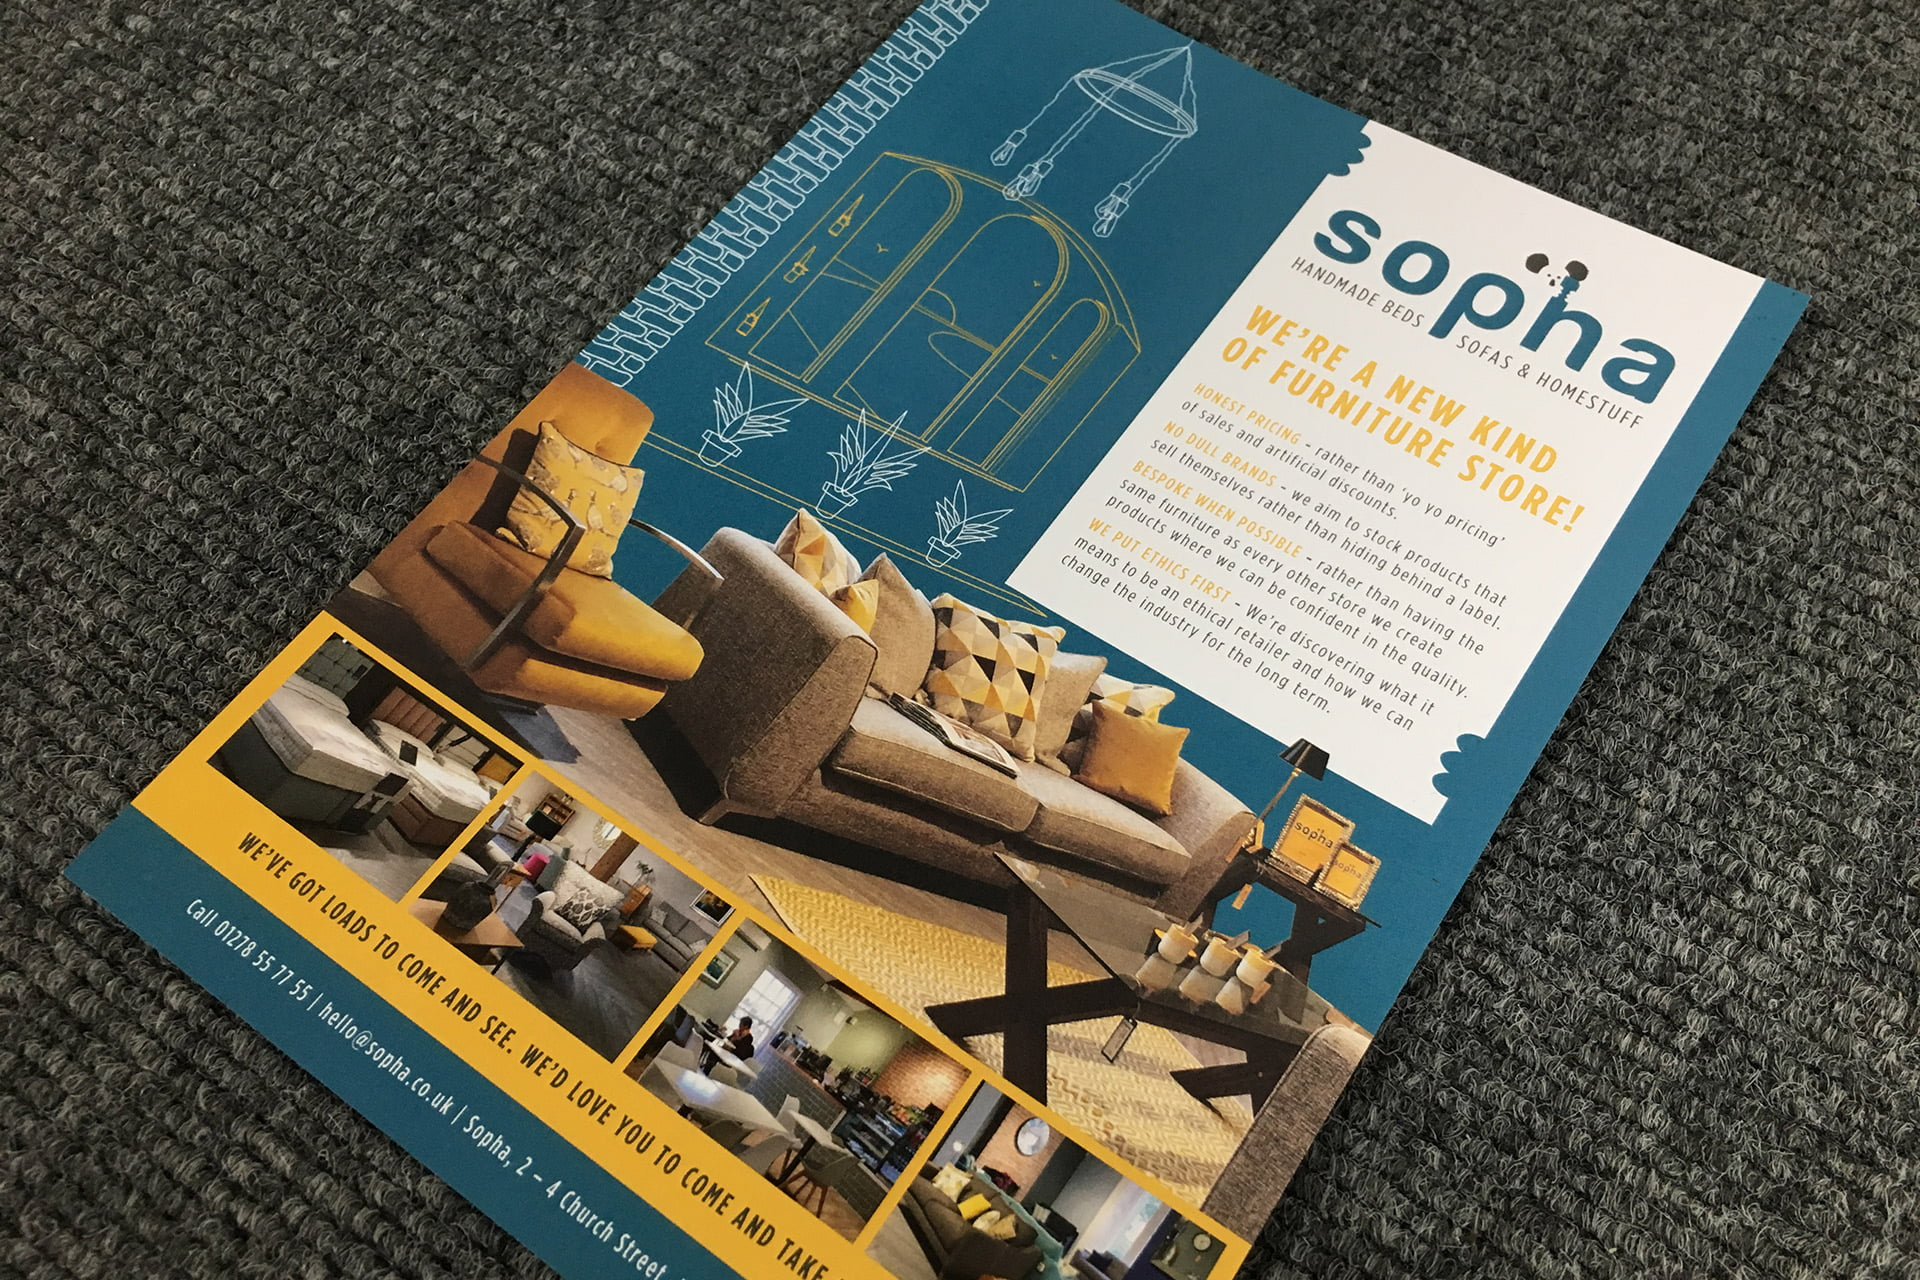 Sopha-furniture-flyer-design-Burham-on-Sea-Somerset